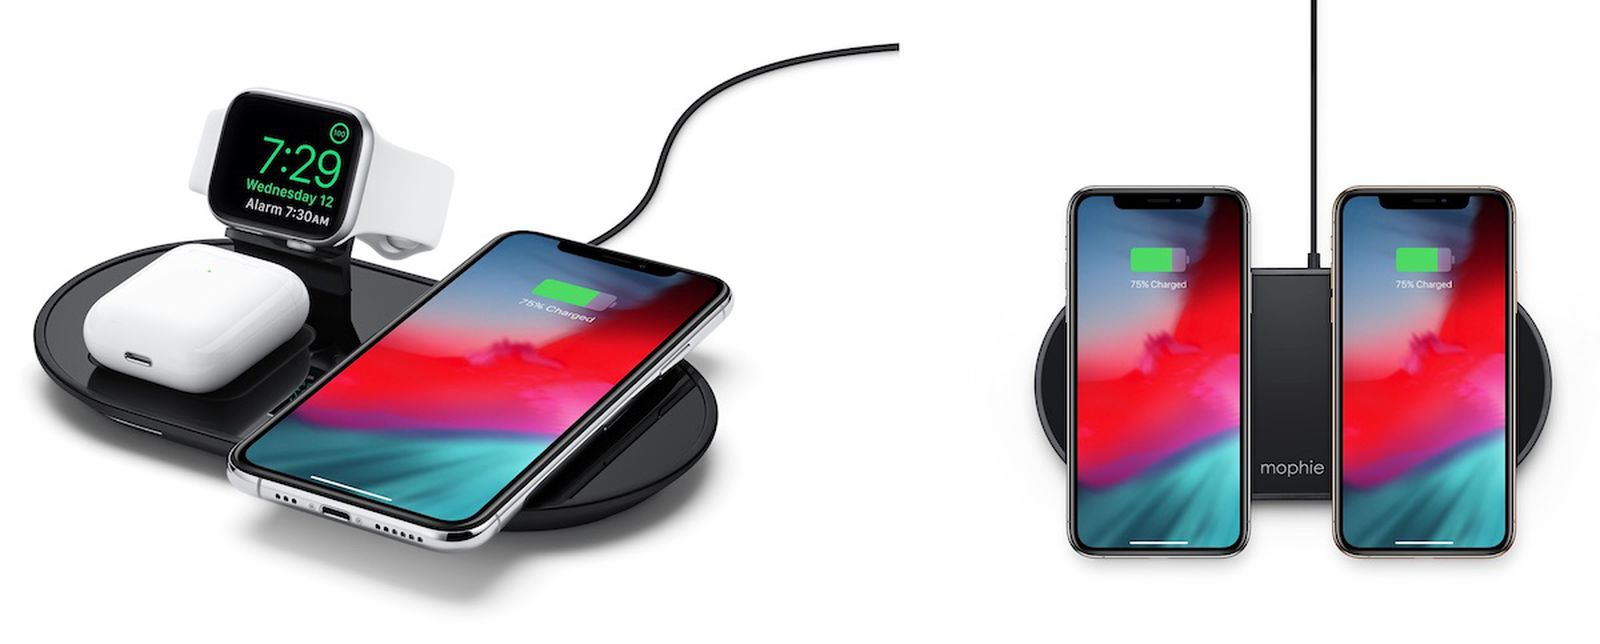 Mophie 3 In 1 Wireless Charging Pad And Dual Wireless Charging Pad Review Macrumors Mophie wireless charge pad drive and charge: mophie 3 in 1 wireless charging pad and